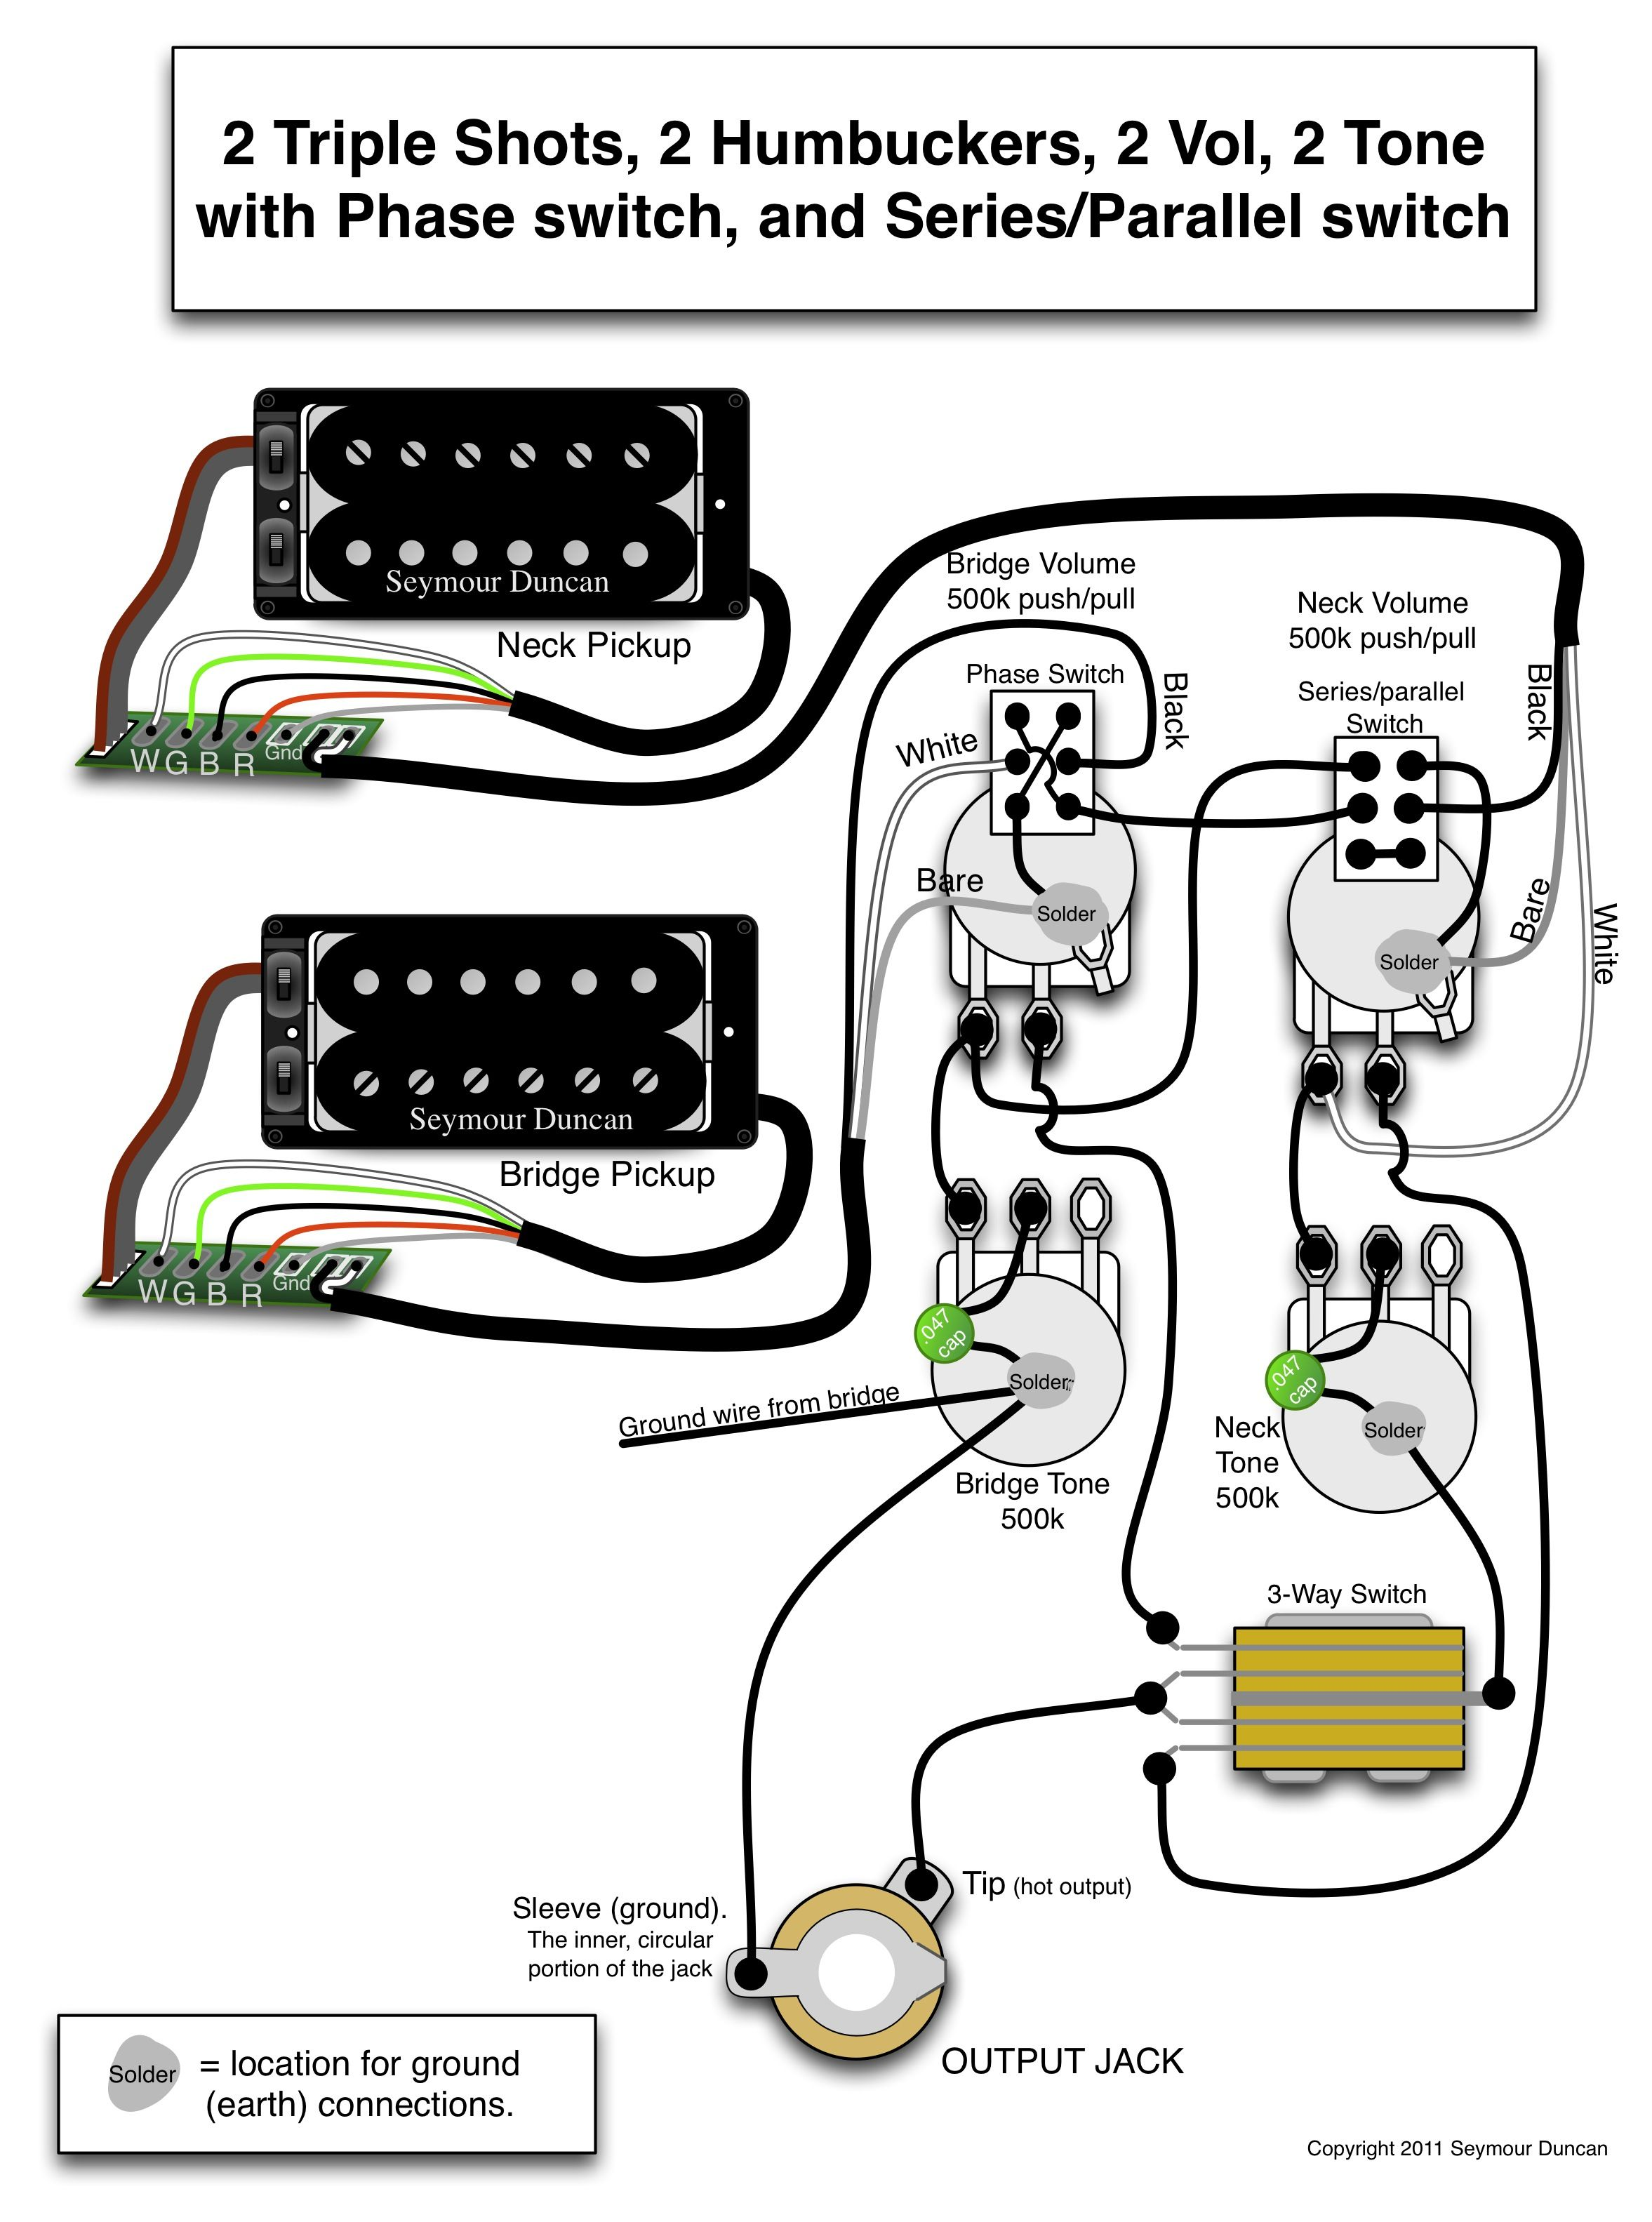 2 humbucker wiring diagrams 1 volume 1tone seymour duncan wiring diagram - 2 triple shots, 2 humbuckers, 2 vol, 2 tone (one with phase ... seymour duncan wiring diagrams 1 humbucker 1 volume #11